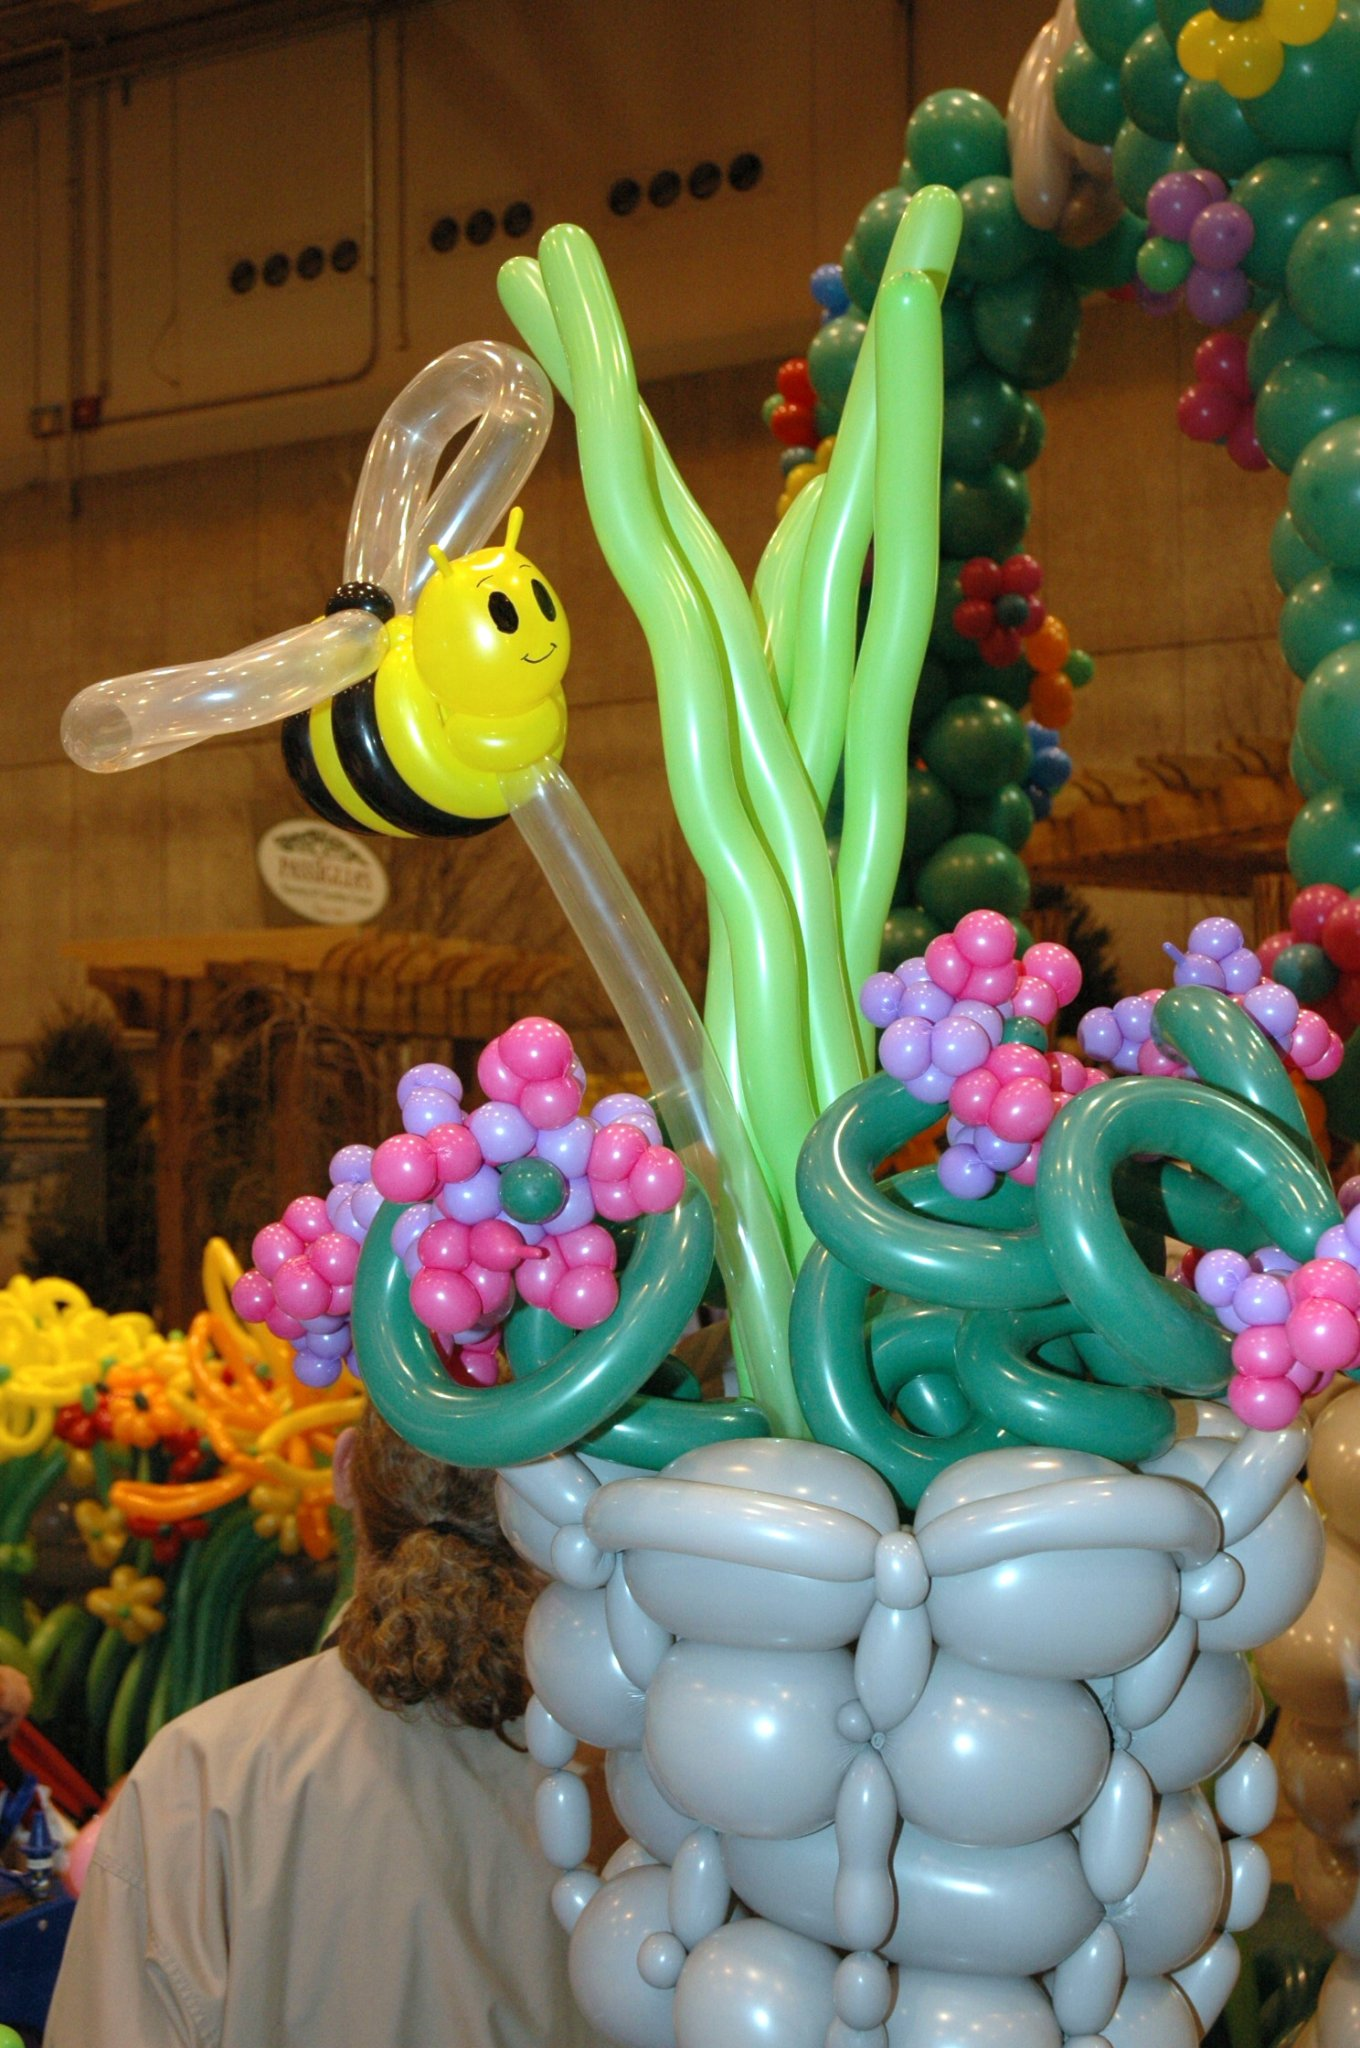 Balloon Garden Was Produced For The St Louis Home U0026 Garden Show. The  Project Took Four Days, Covered 600 Square Feet And Used More Than 6,000  Balloons.